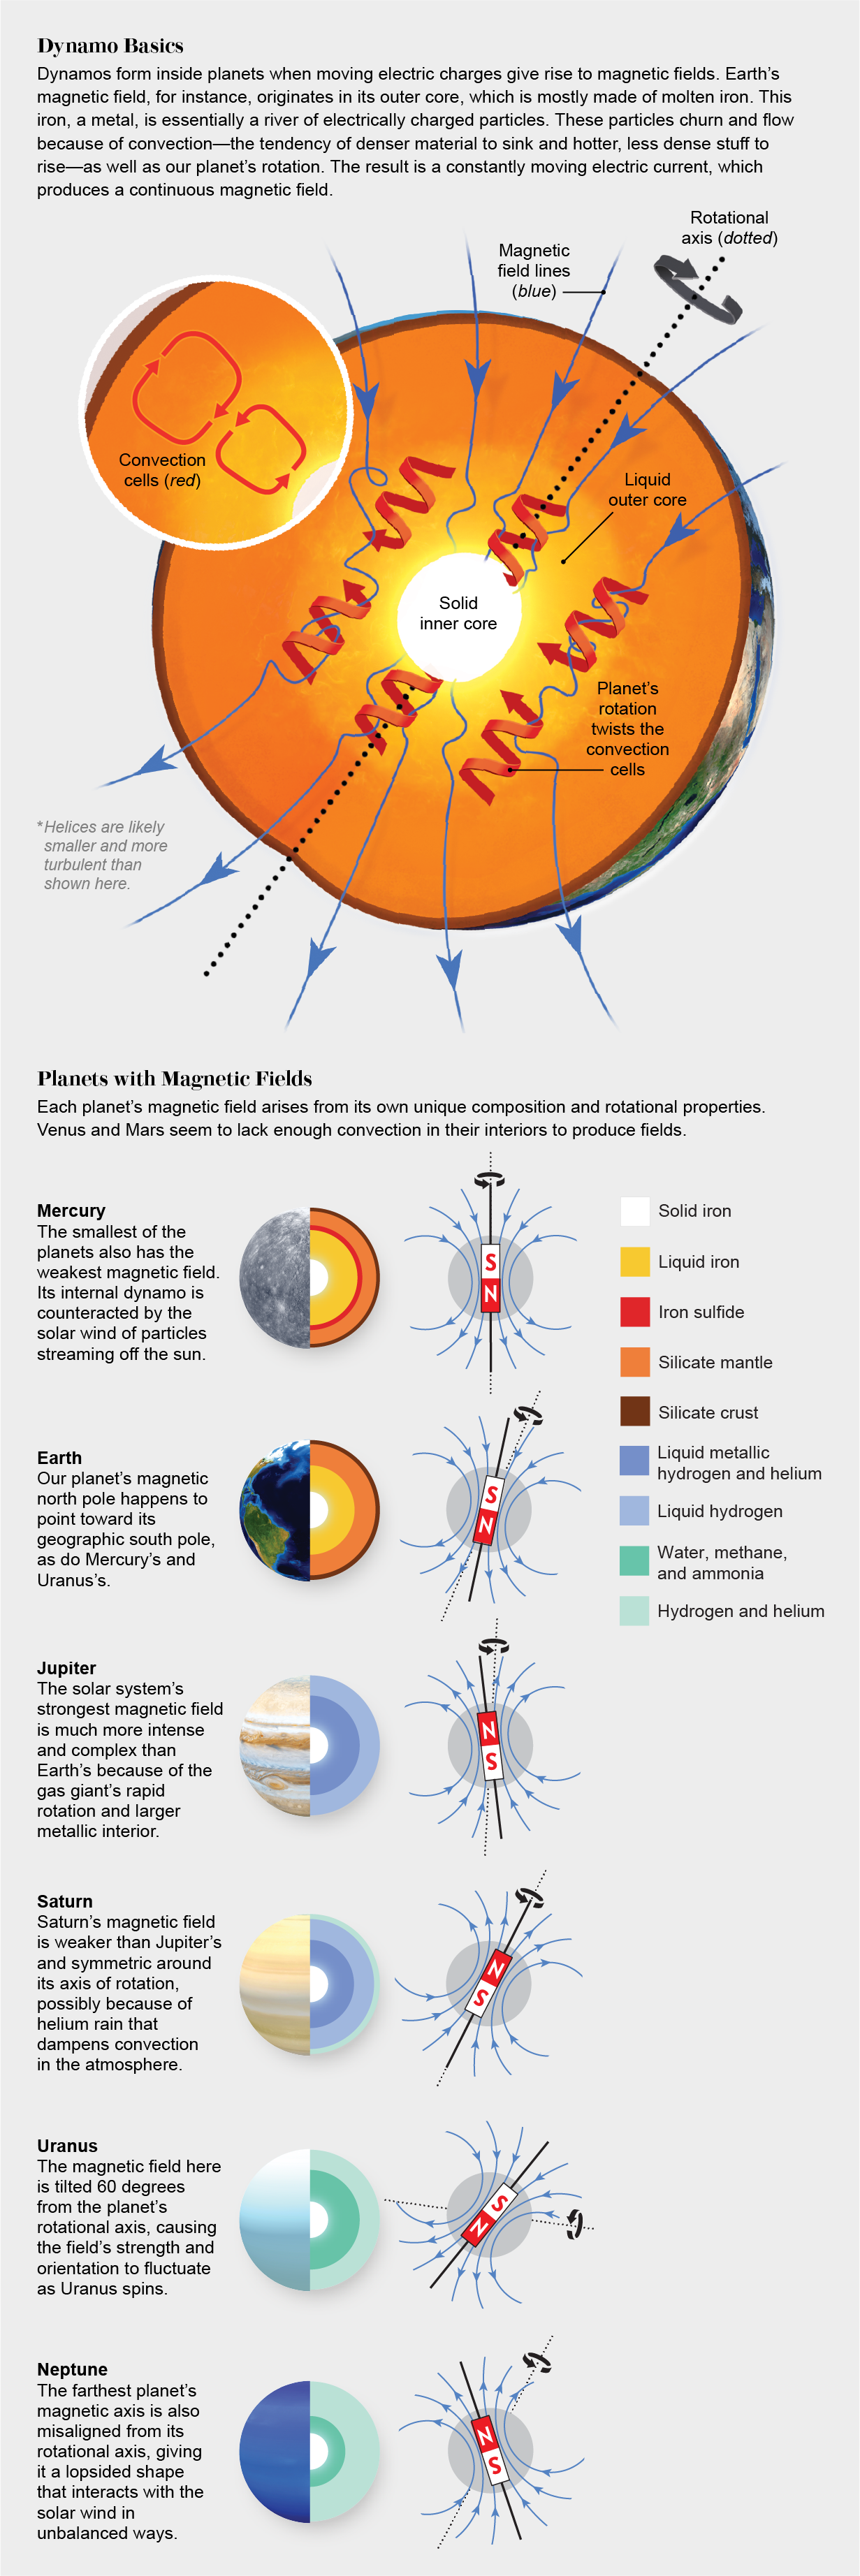 Graphic explains how planetary dynamos form and shows the compositions of planets with magnetic fields in our solar system.